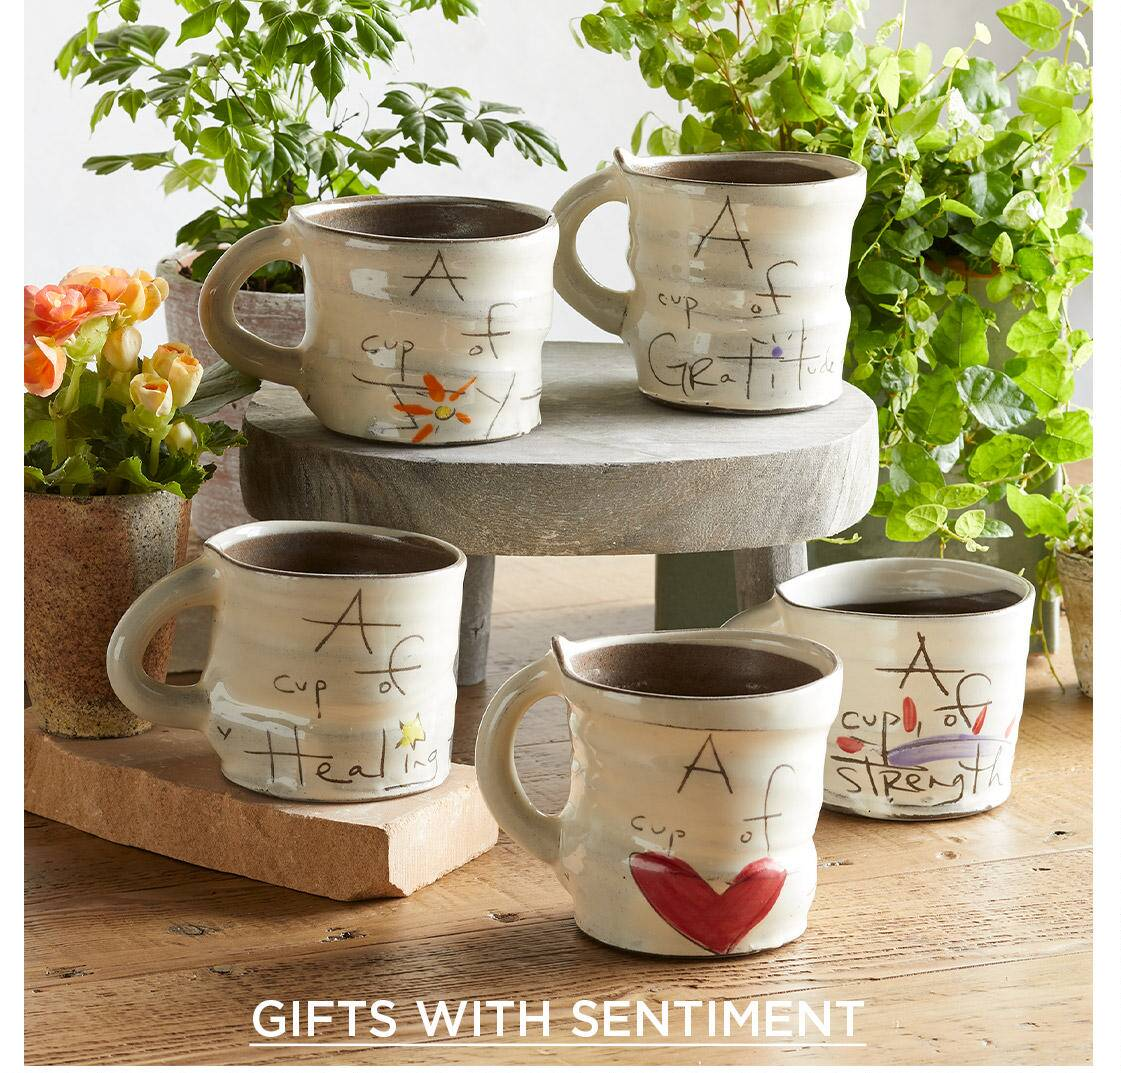 Gifts with sentiment